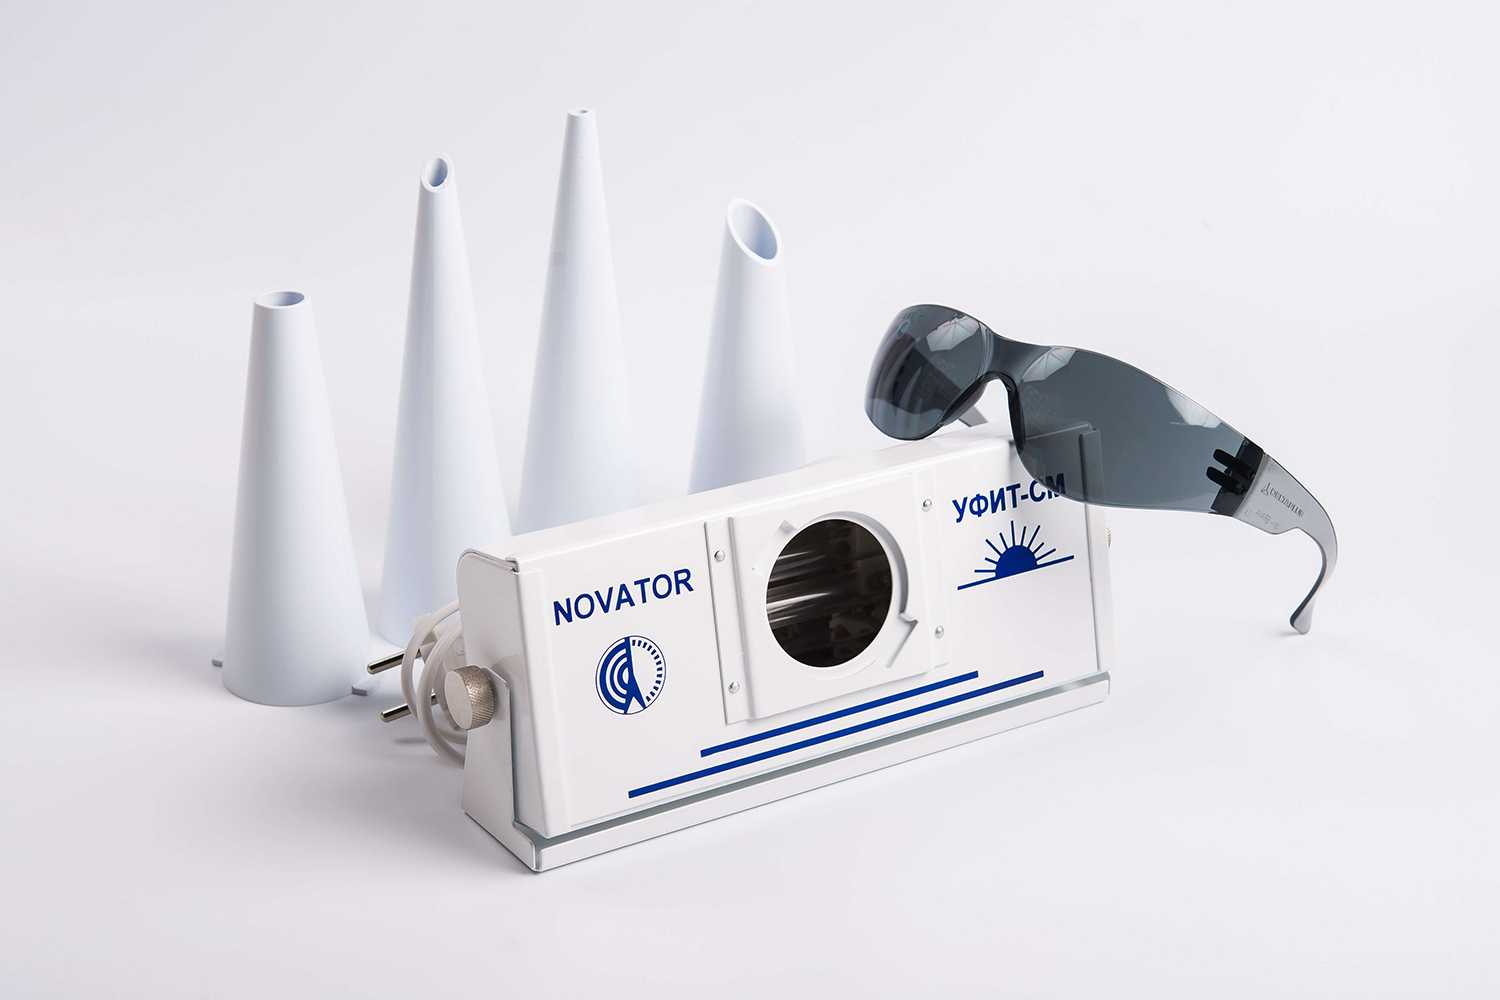 02 Novator - The device of bactericidal action of UFIT-CM